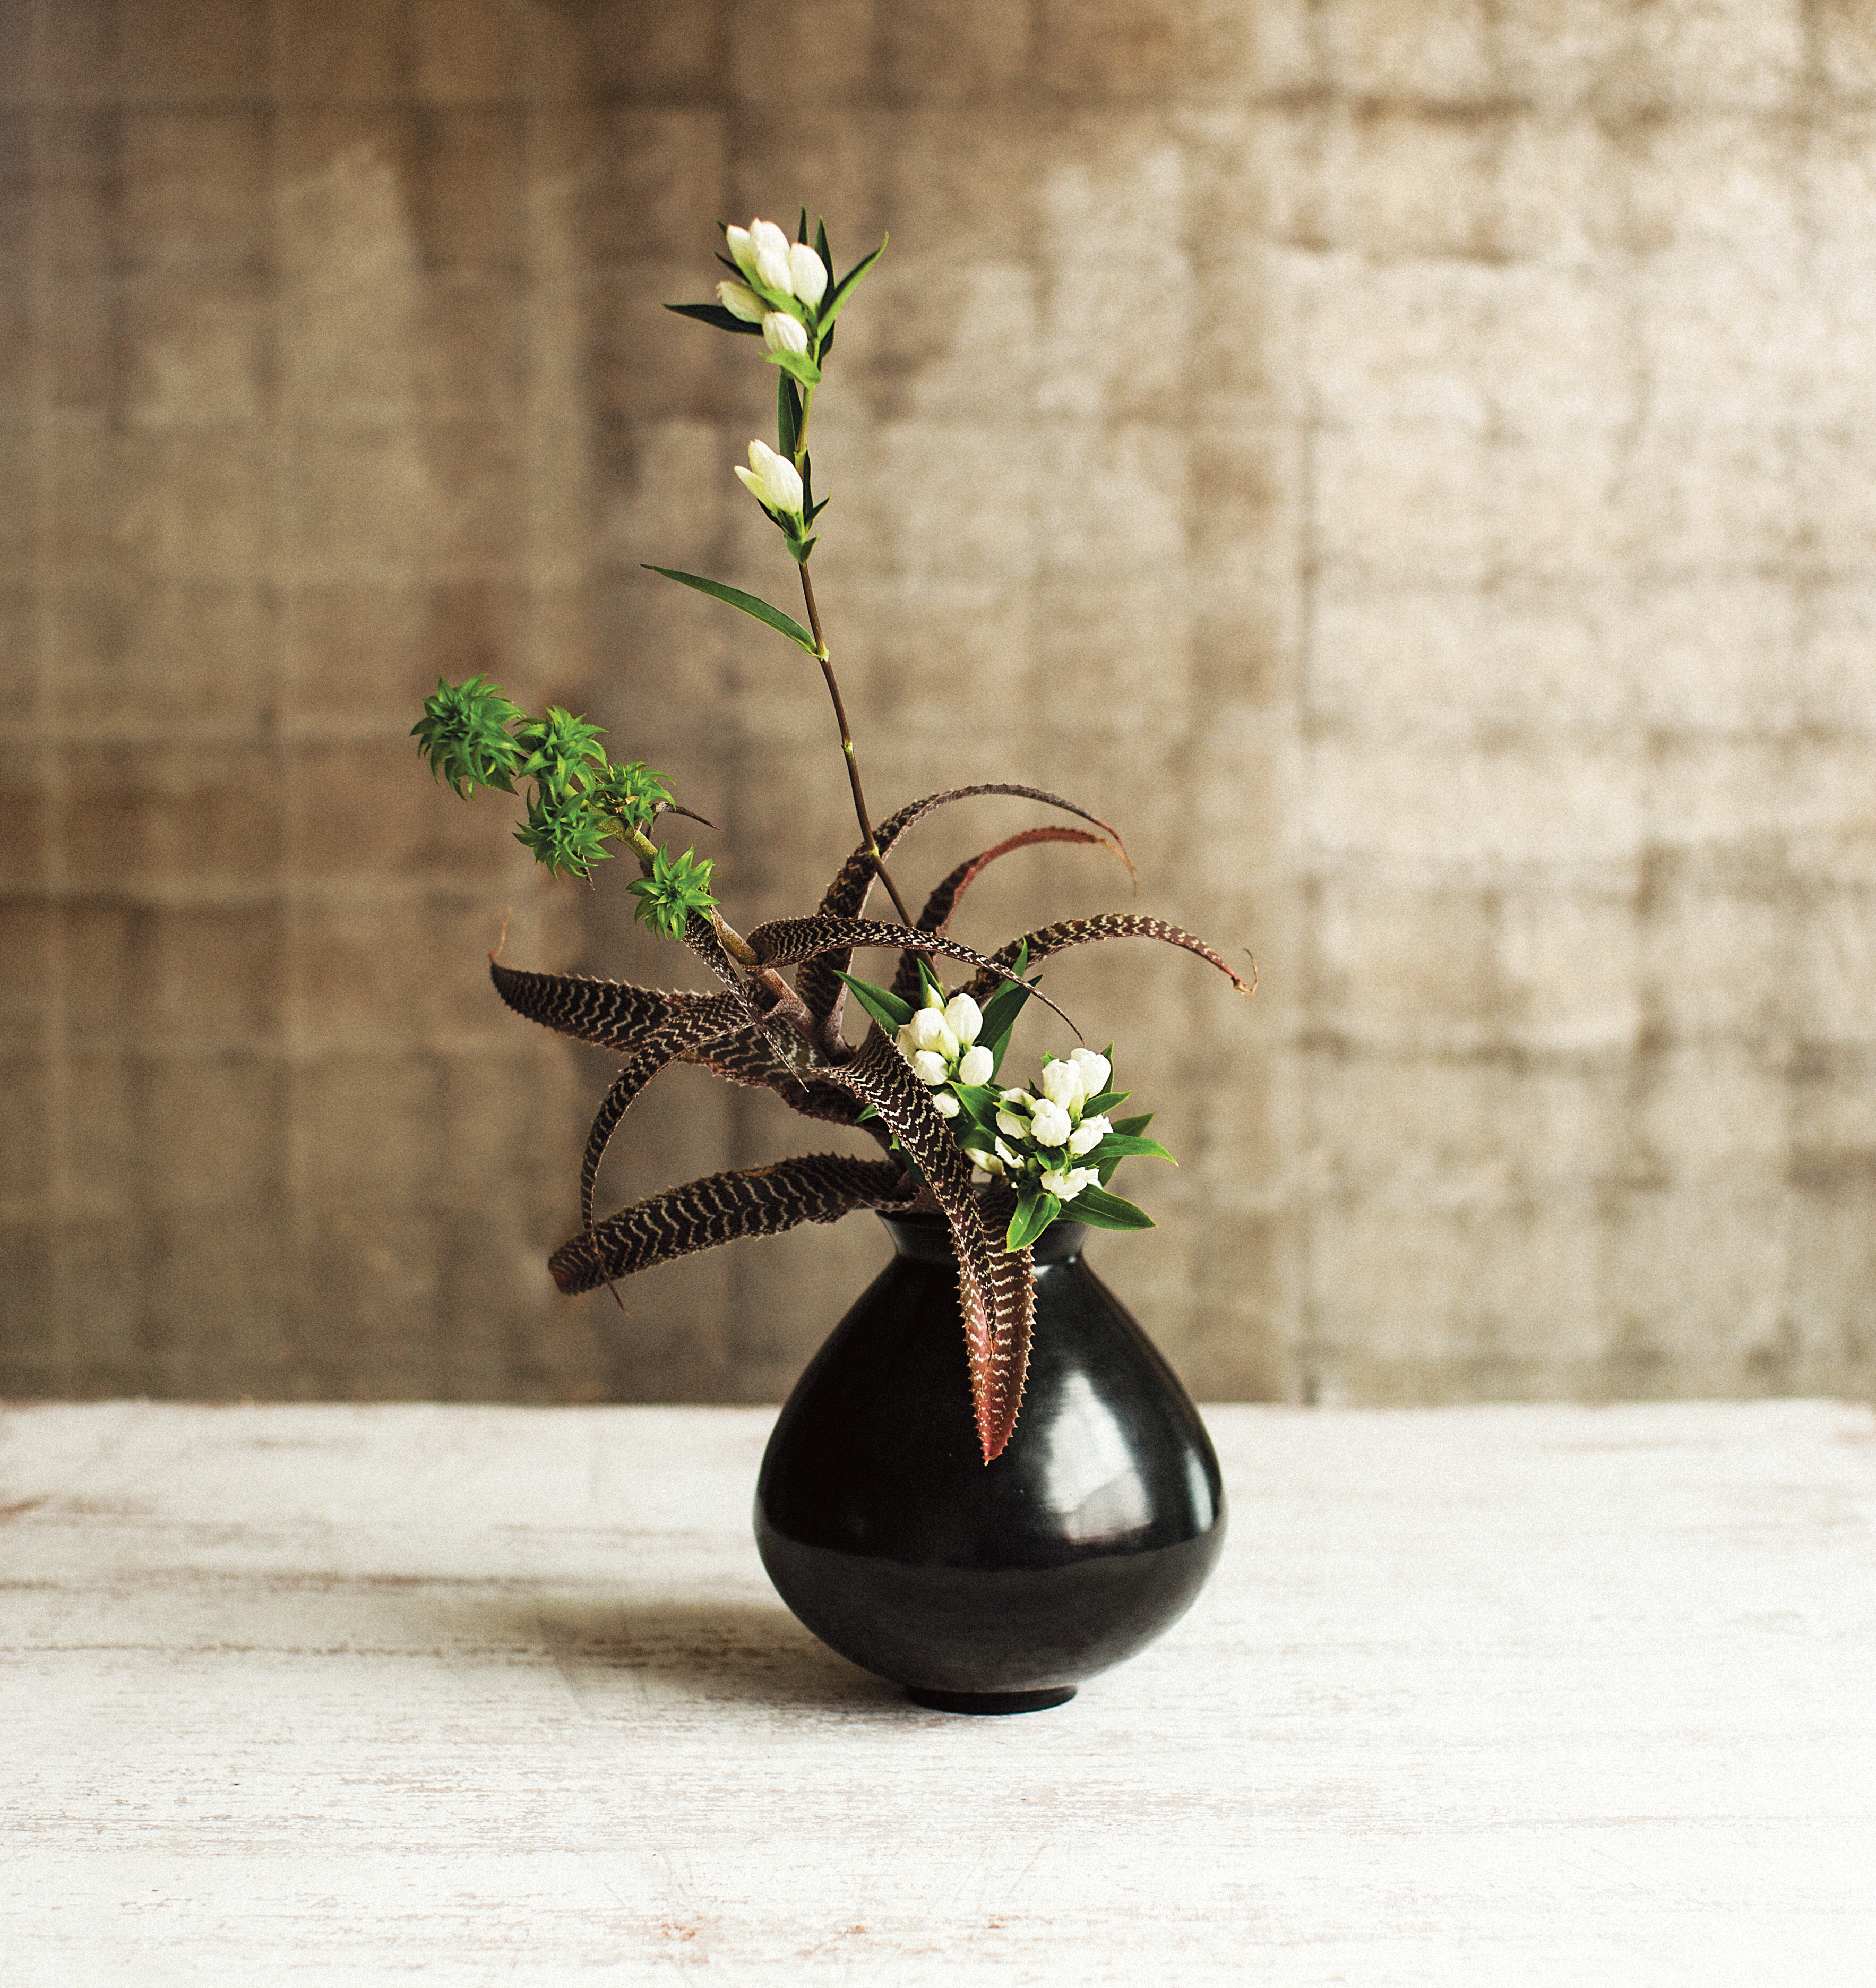 Ikebana by Naomi Daimaru and bulb bronze vessel by Alexander Lamont